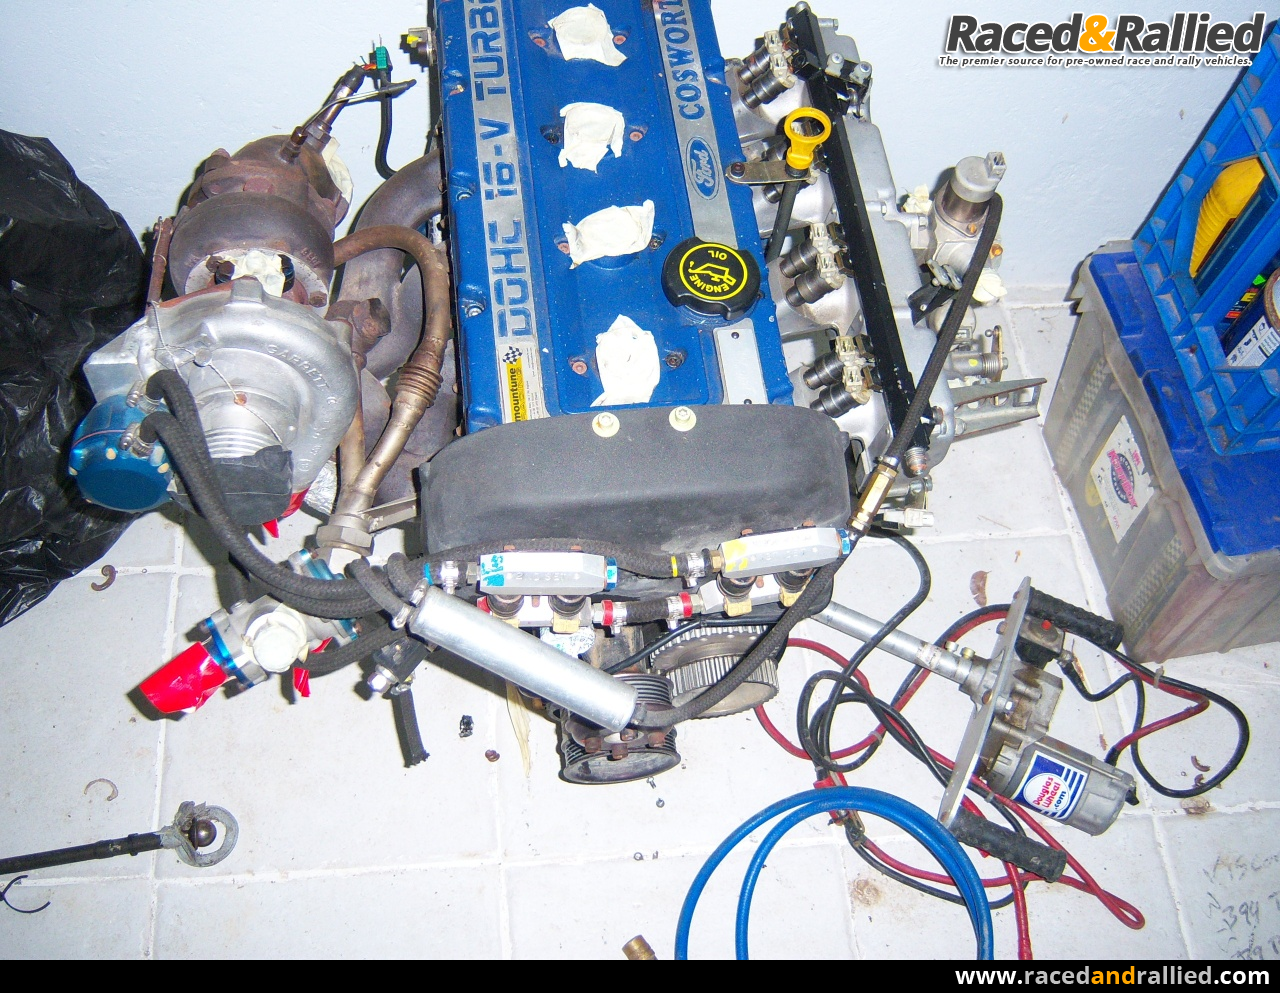 Peachy Mountune Wrc Engine Rally Car Parts For Sale At Raced Rallied Wiring 101 Relewellnesstrialsorg